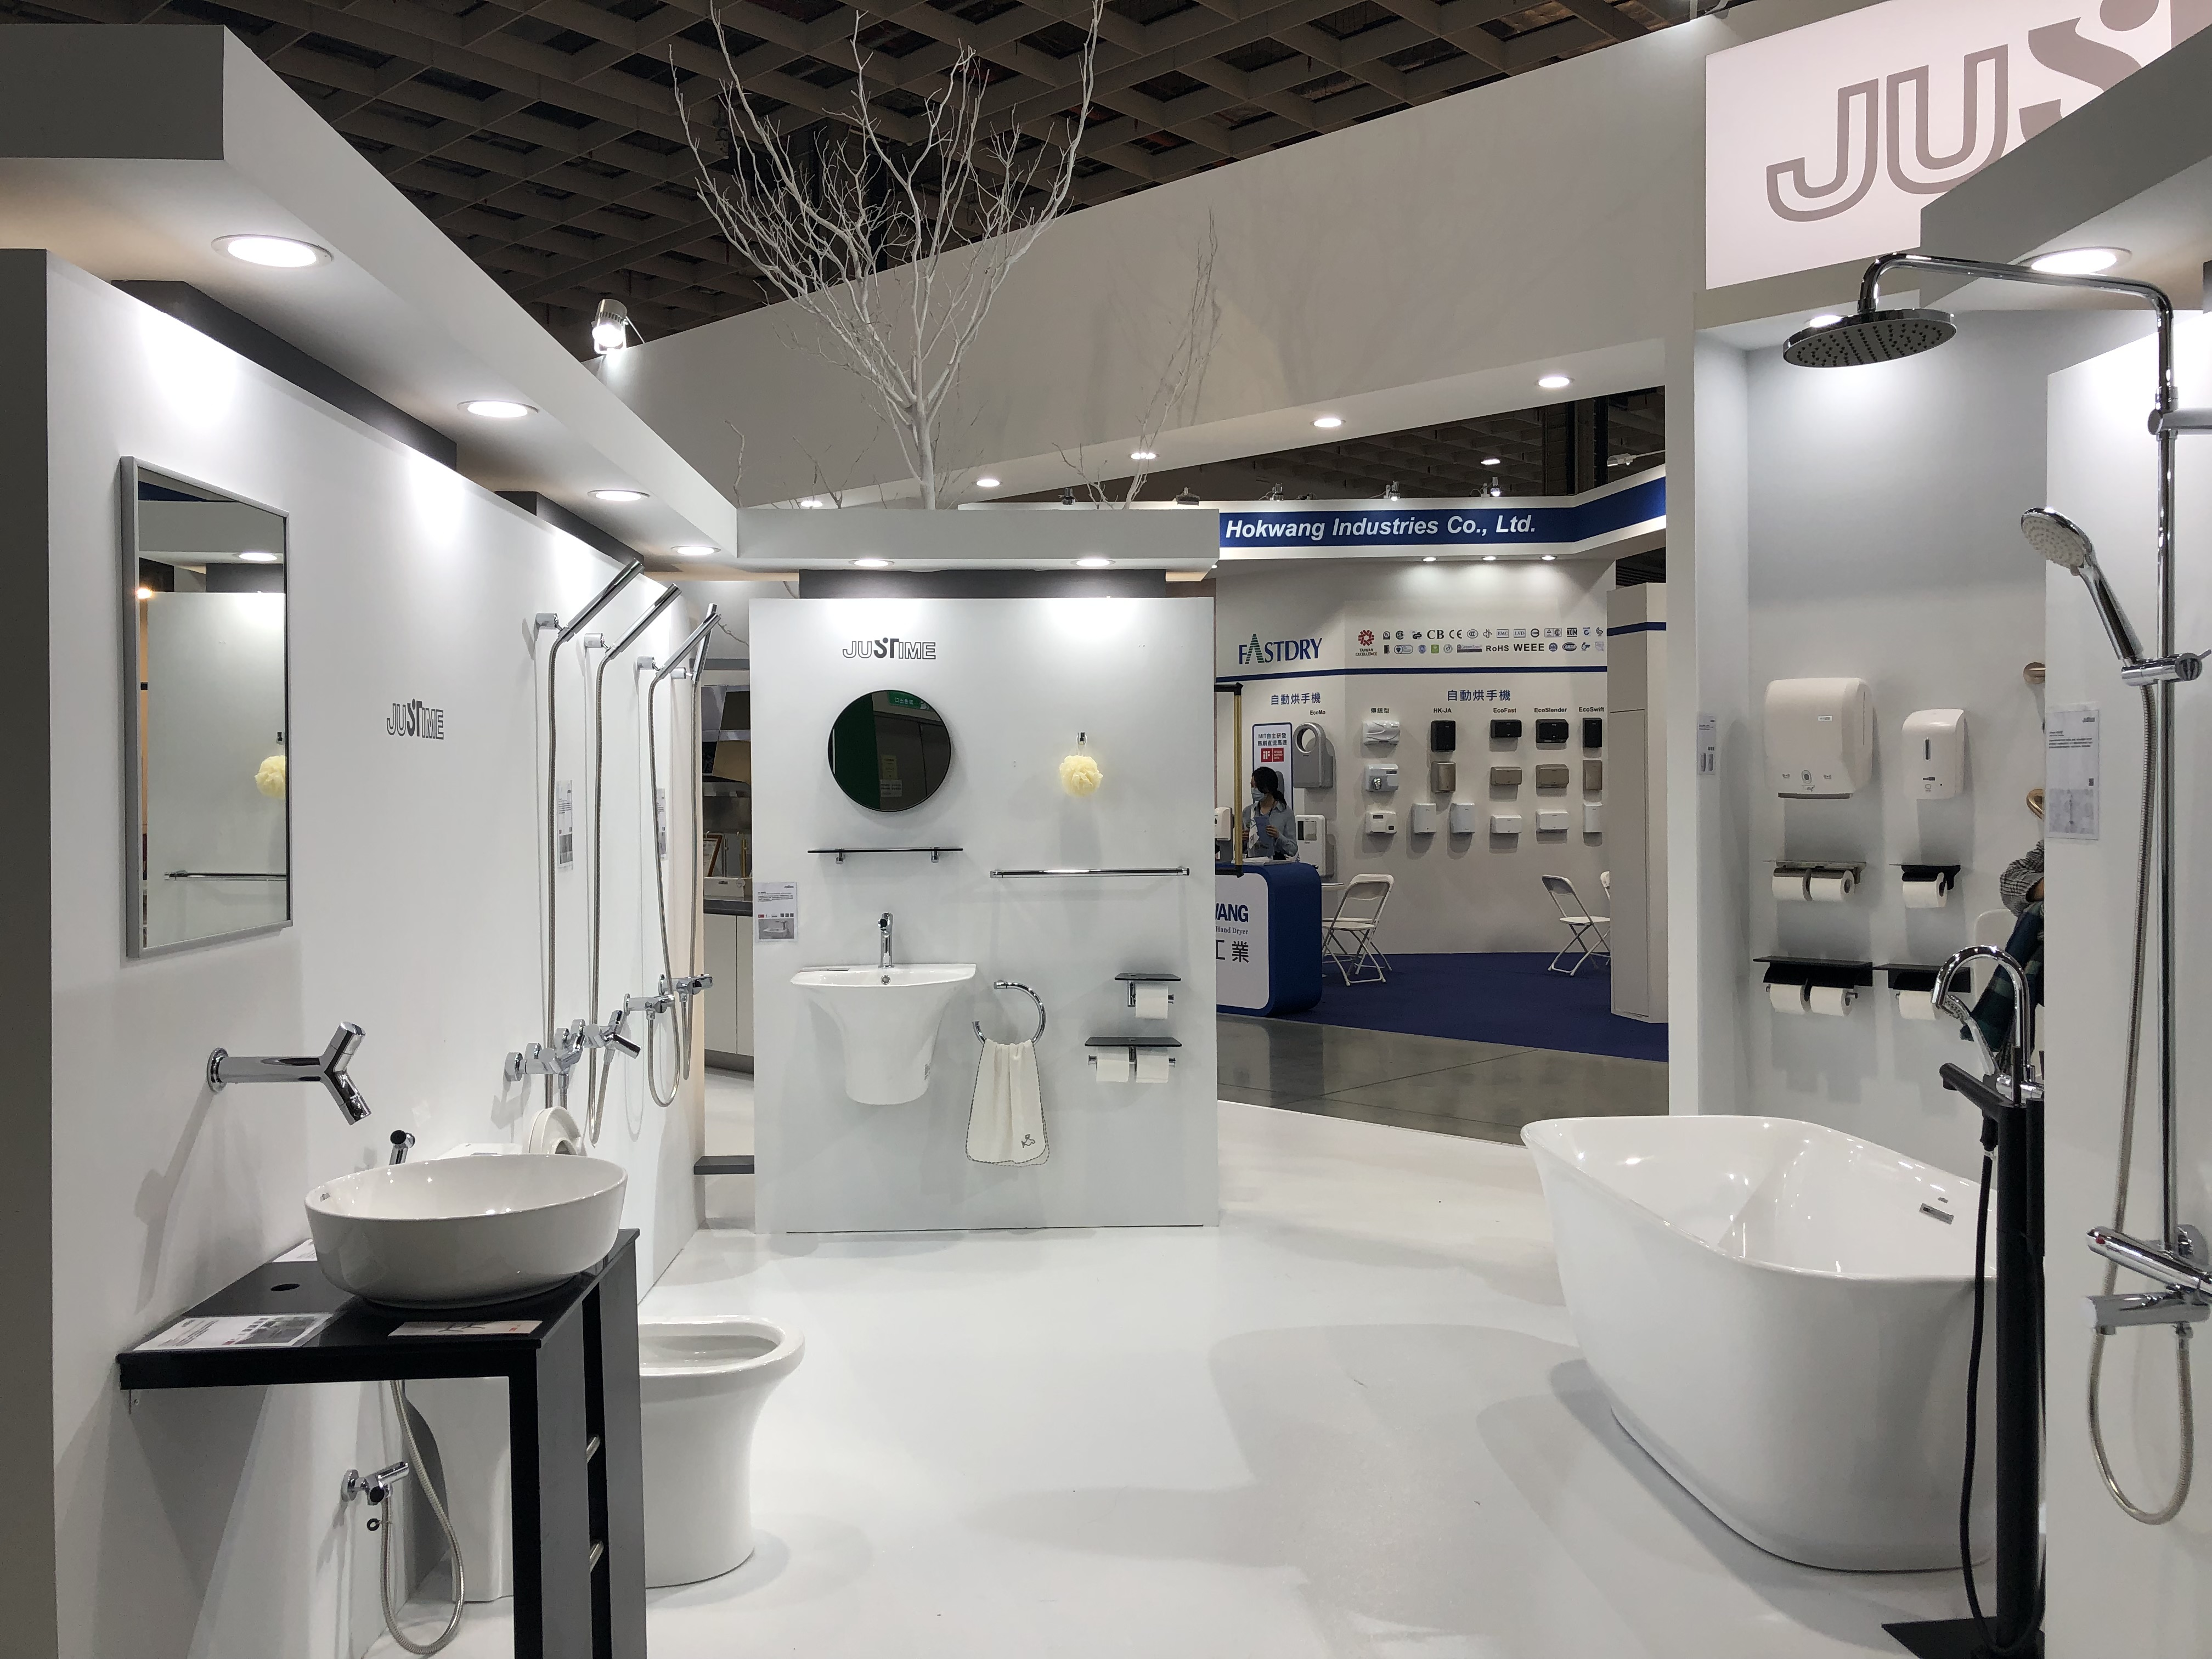 When Faucets Meets Fashion | JUSTIME's Cross-industry Aesthetics